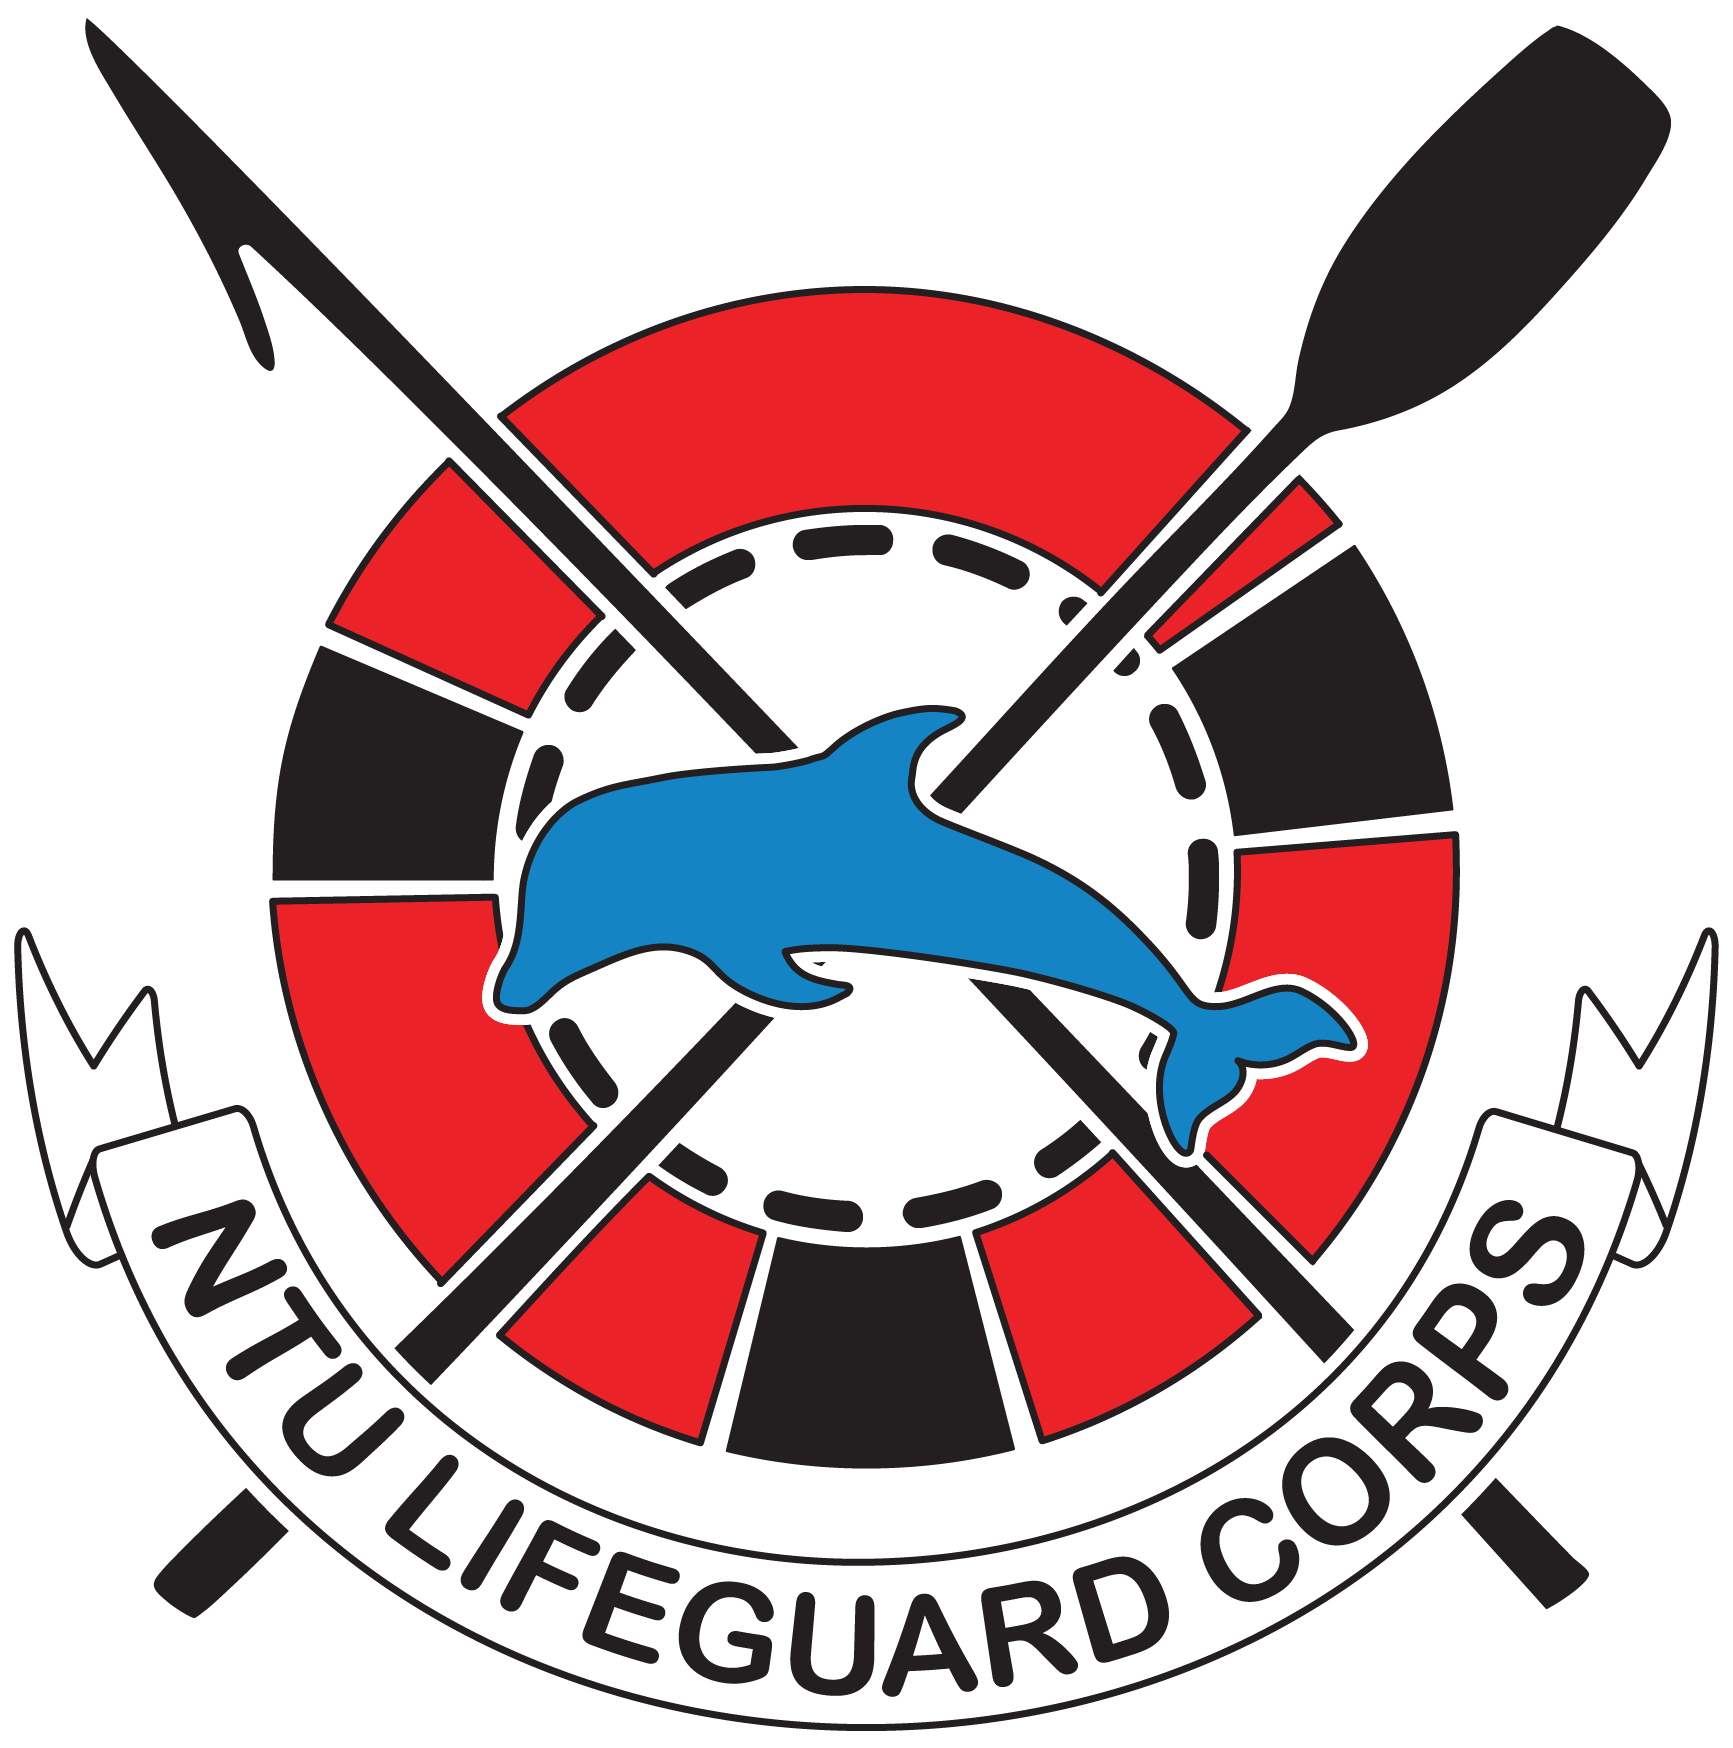 NTU Lifeguards Corps